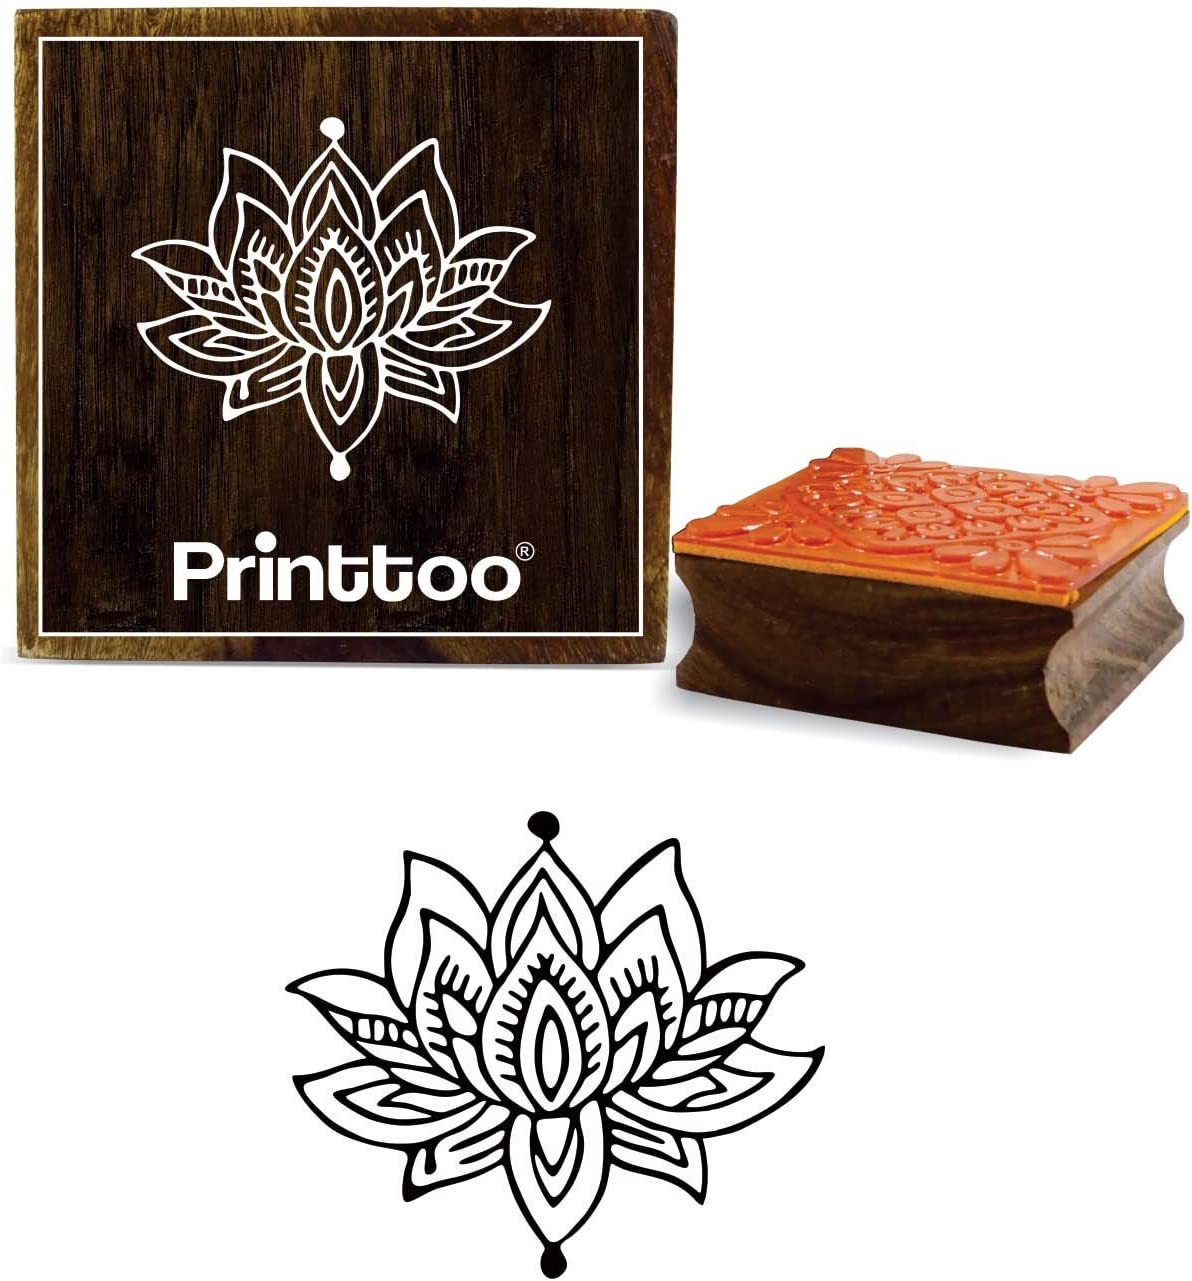 Printtoo Lotus Floral Design Wooden Rubber Stamp Square Brown Craft Block-2 x 2 Inches